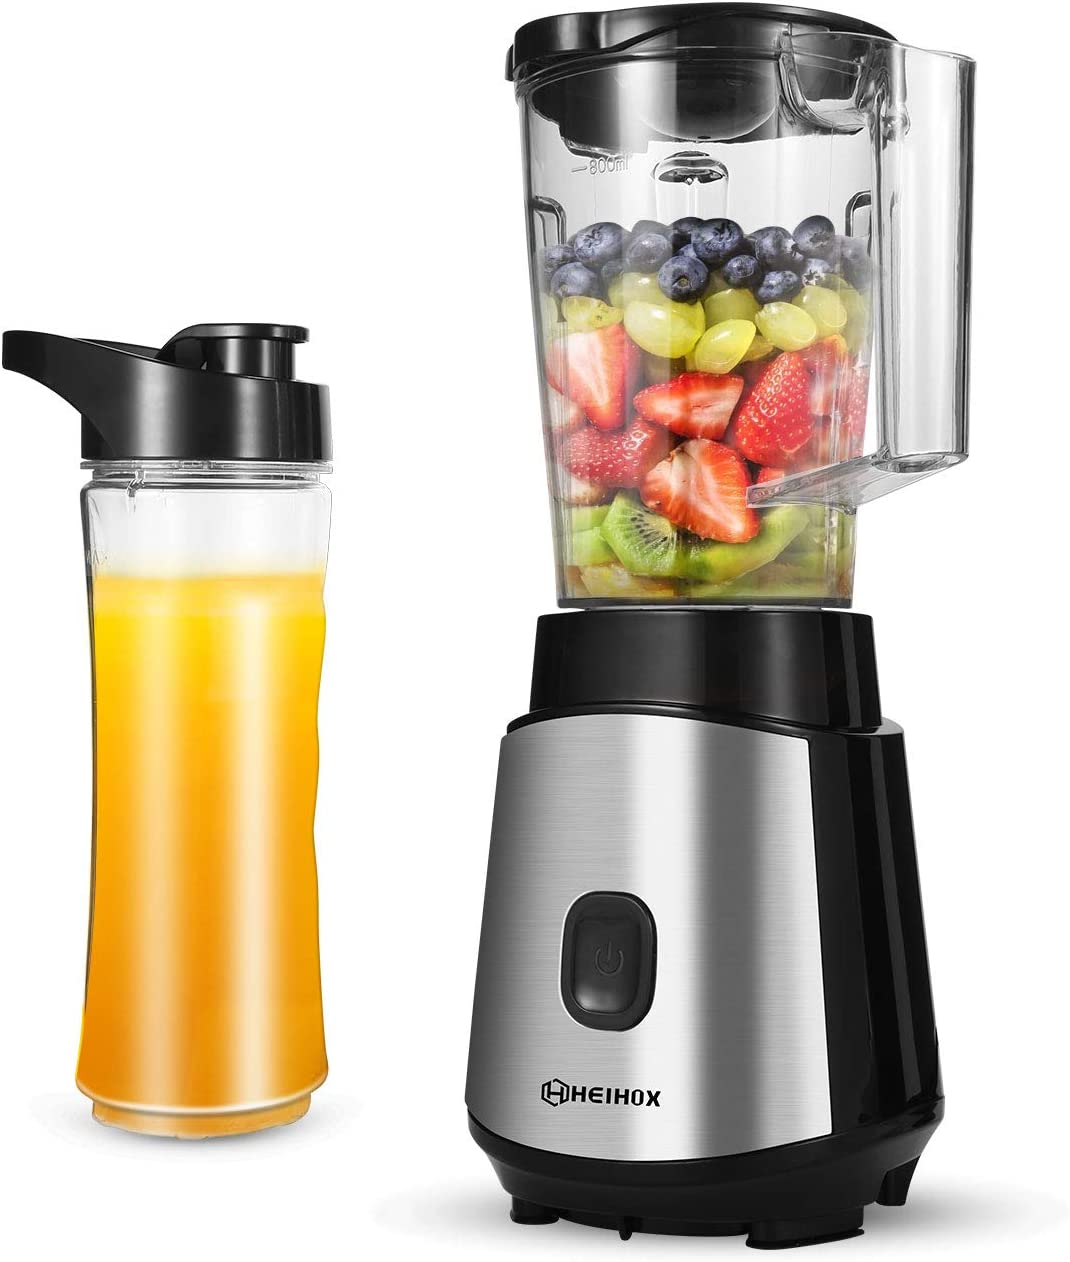 HEIHOX Personal Blender for Shakes, Smoothies, Food Prep and Frozen Blending, with BPA Free 32 Oz. Jar and 19 Oz. To-go Cups, Countertop Smoothies Blenders for Kitchen, Black